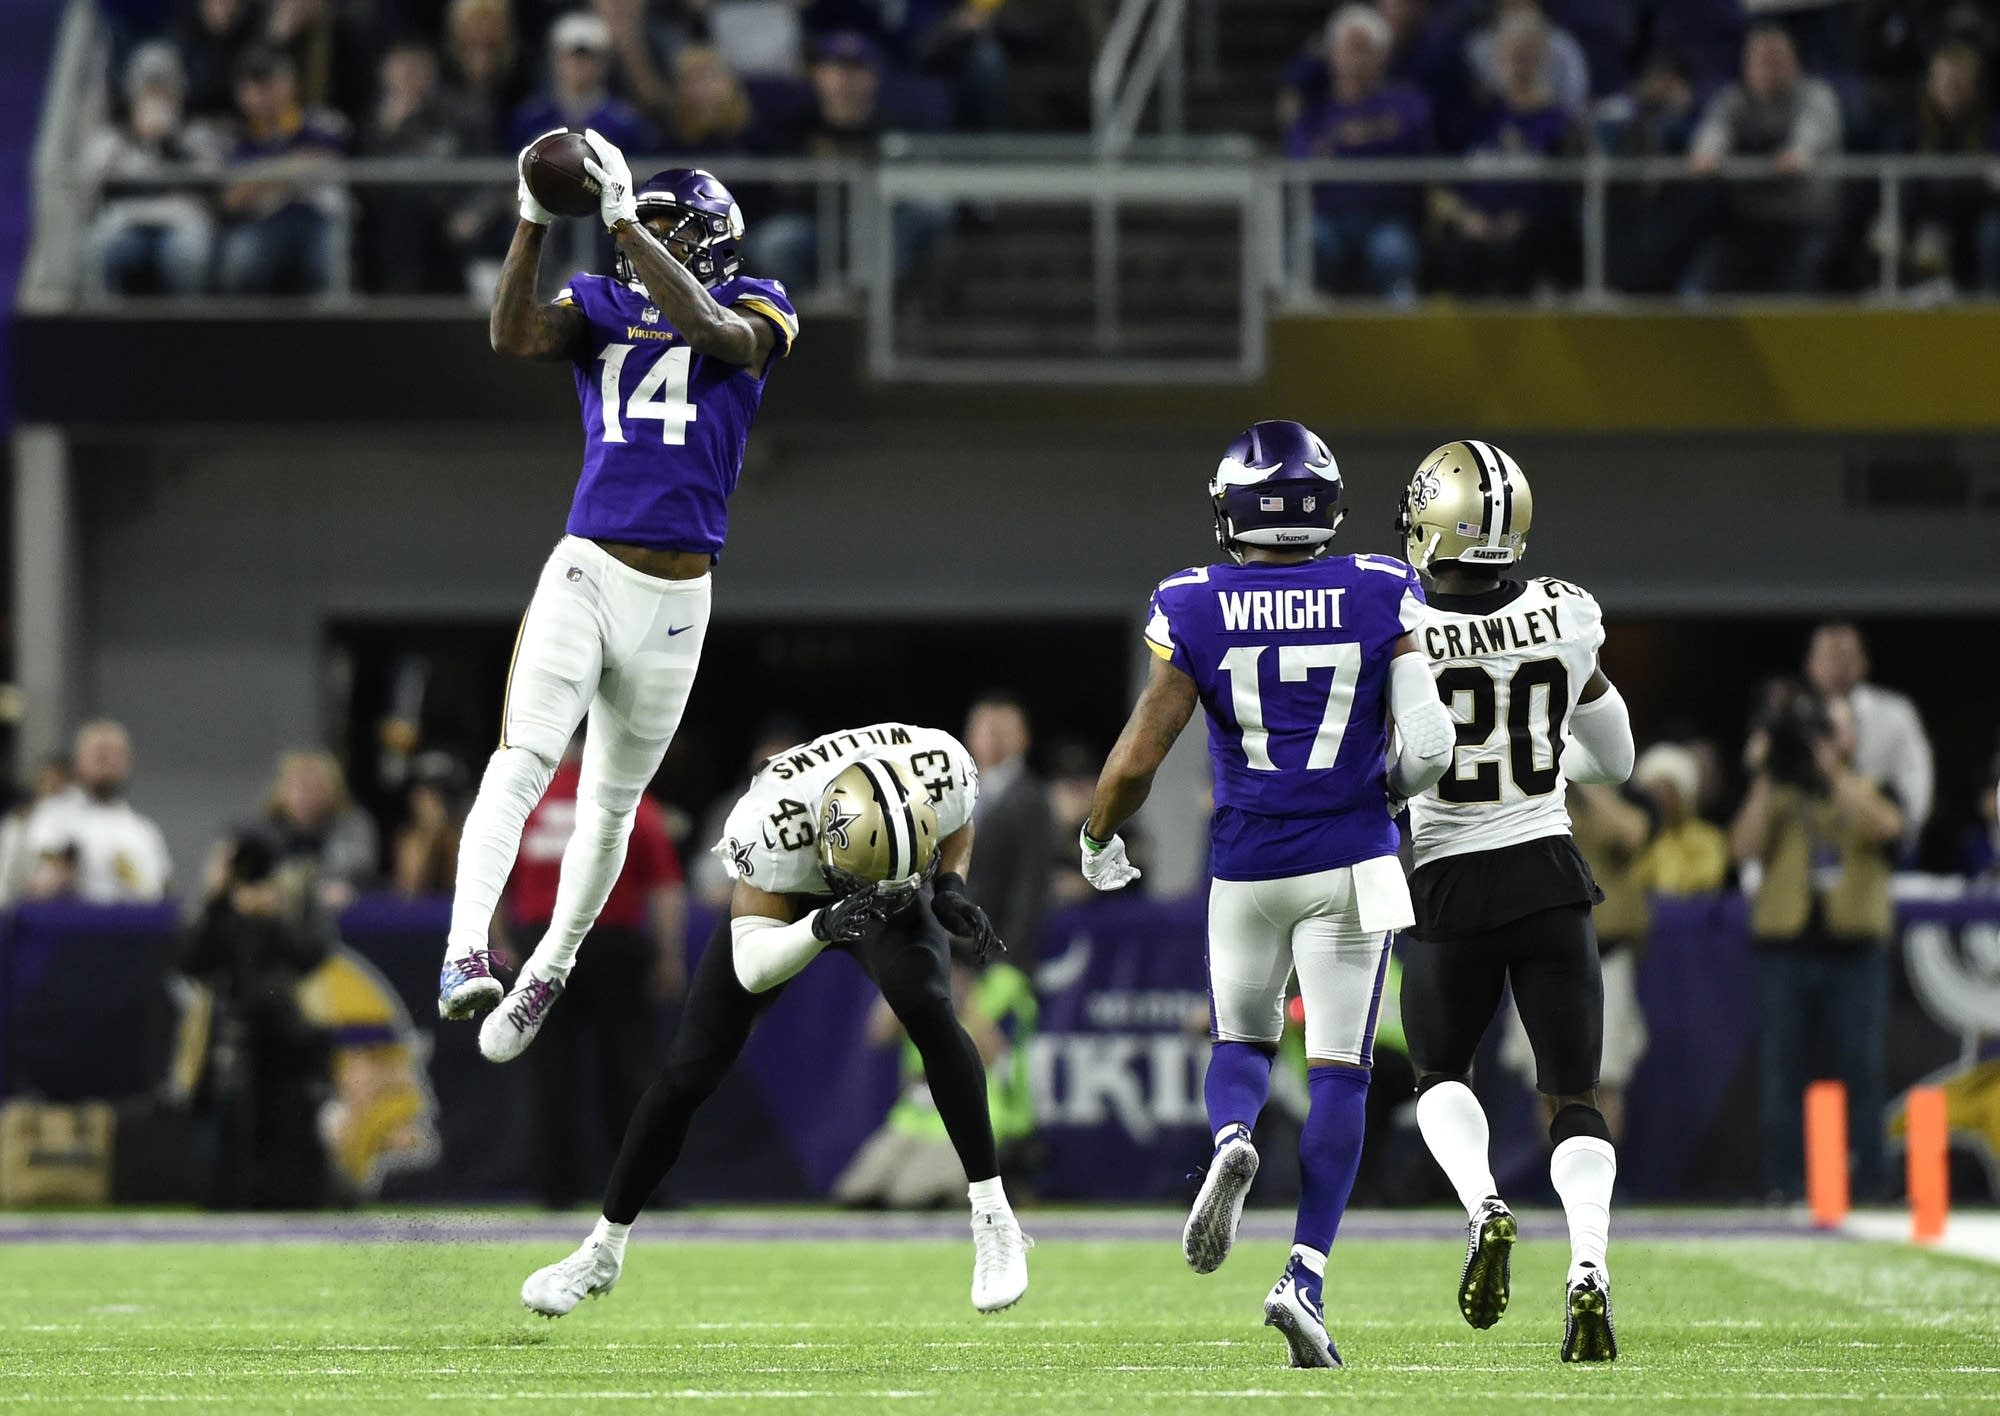 Stefon Diggs (#14) of the Minnesota Vikings leaps to catch the ball.